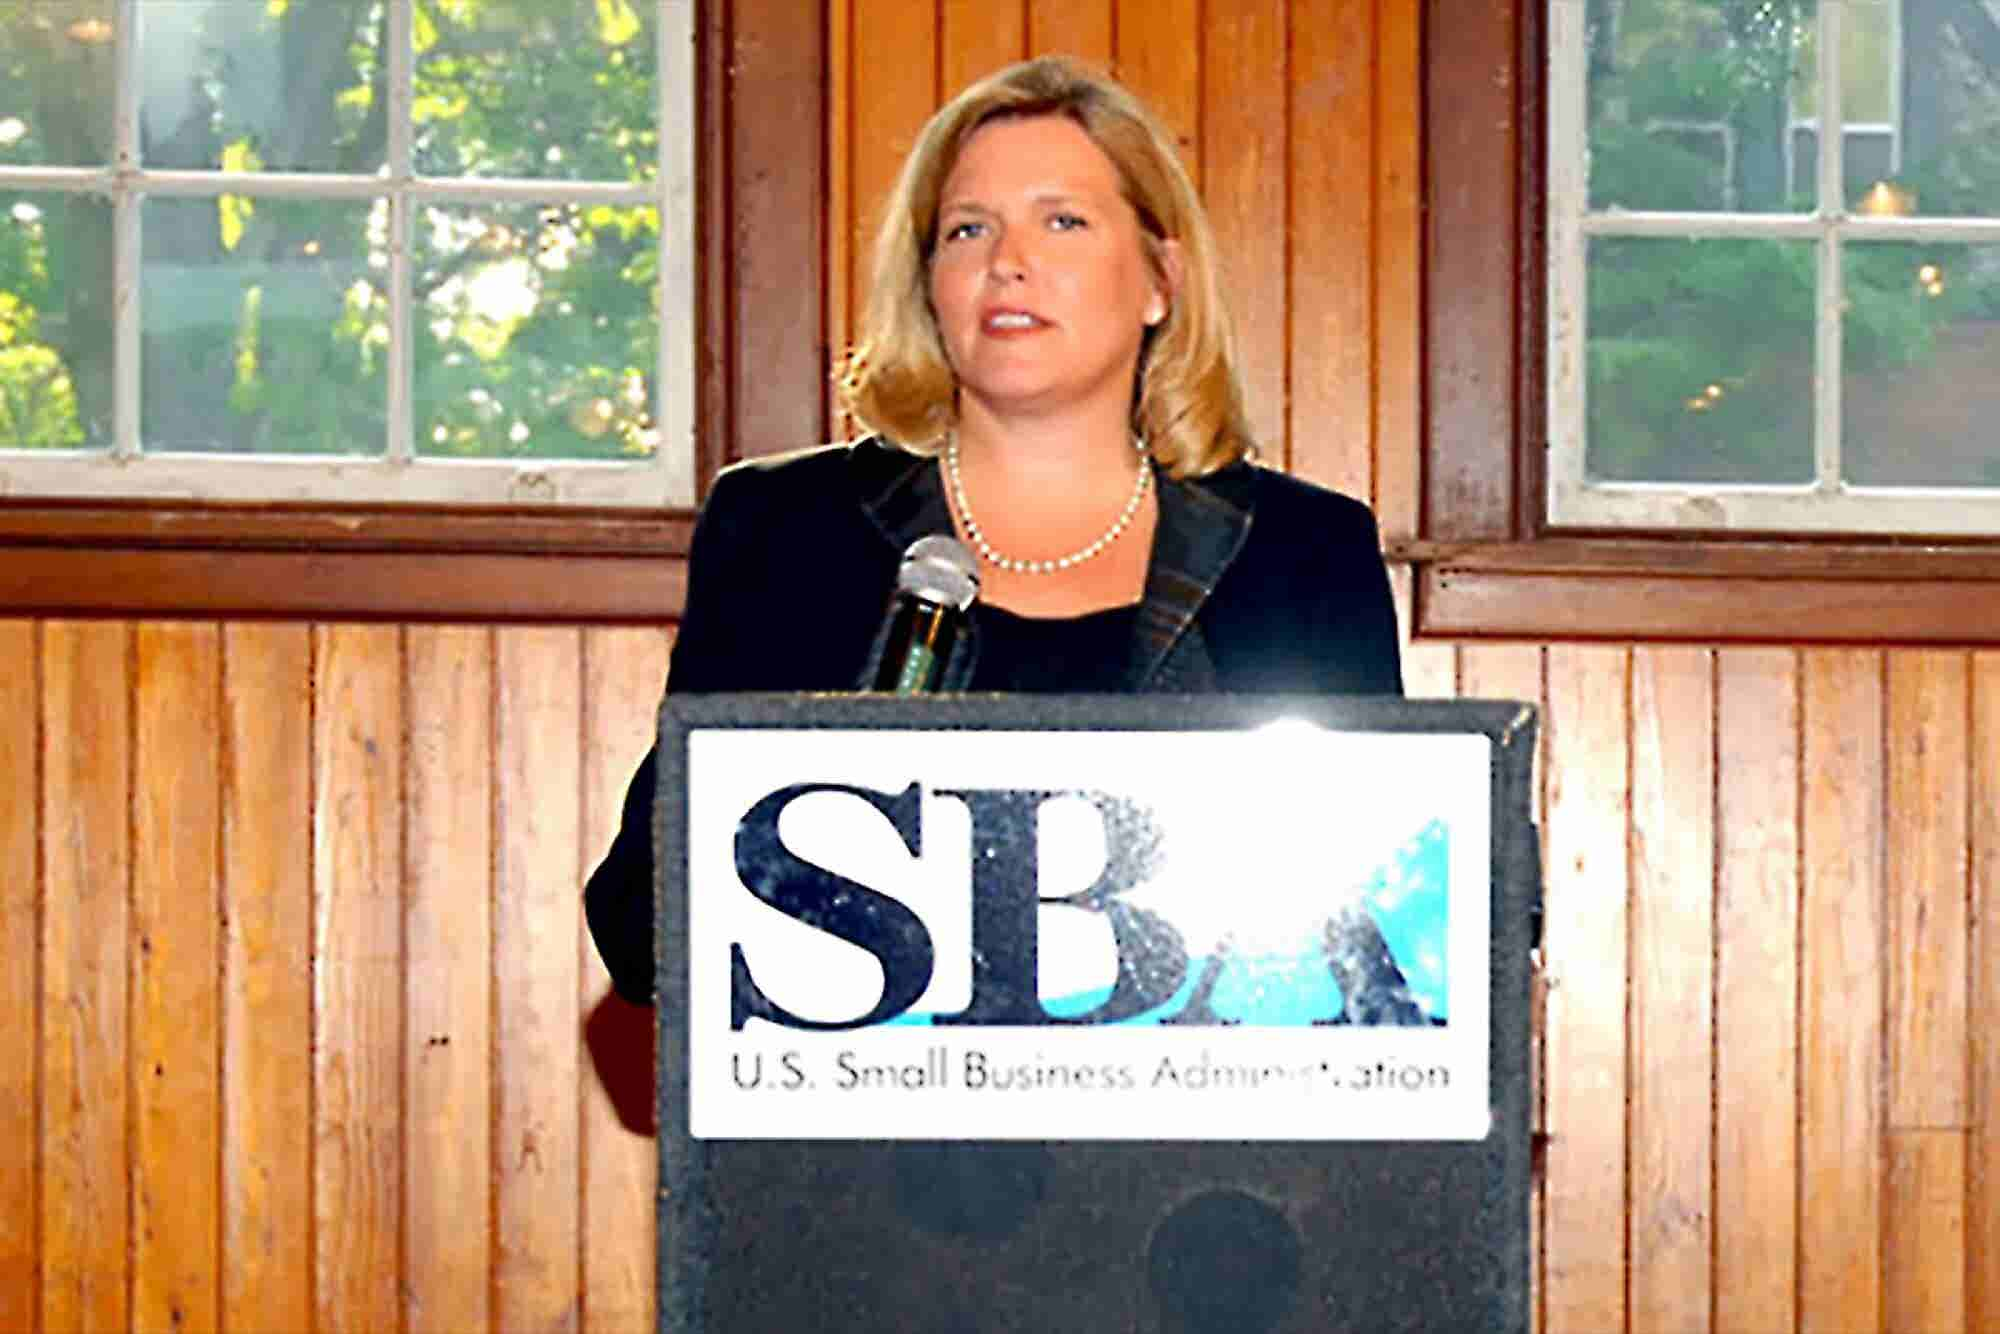 SBA Gets a Temporary Chief